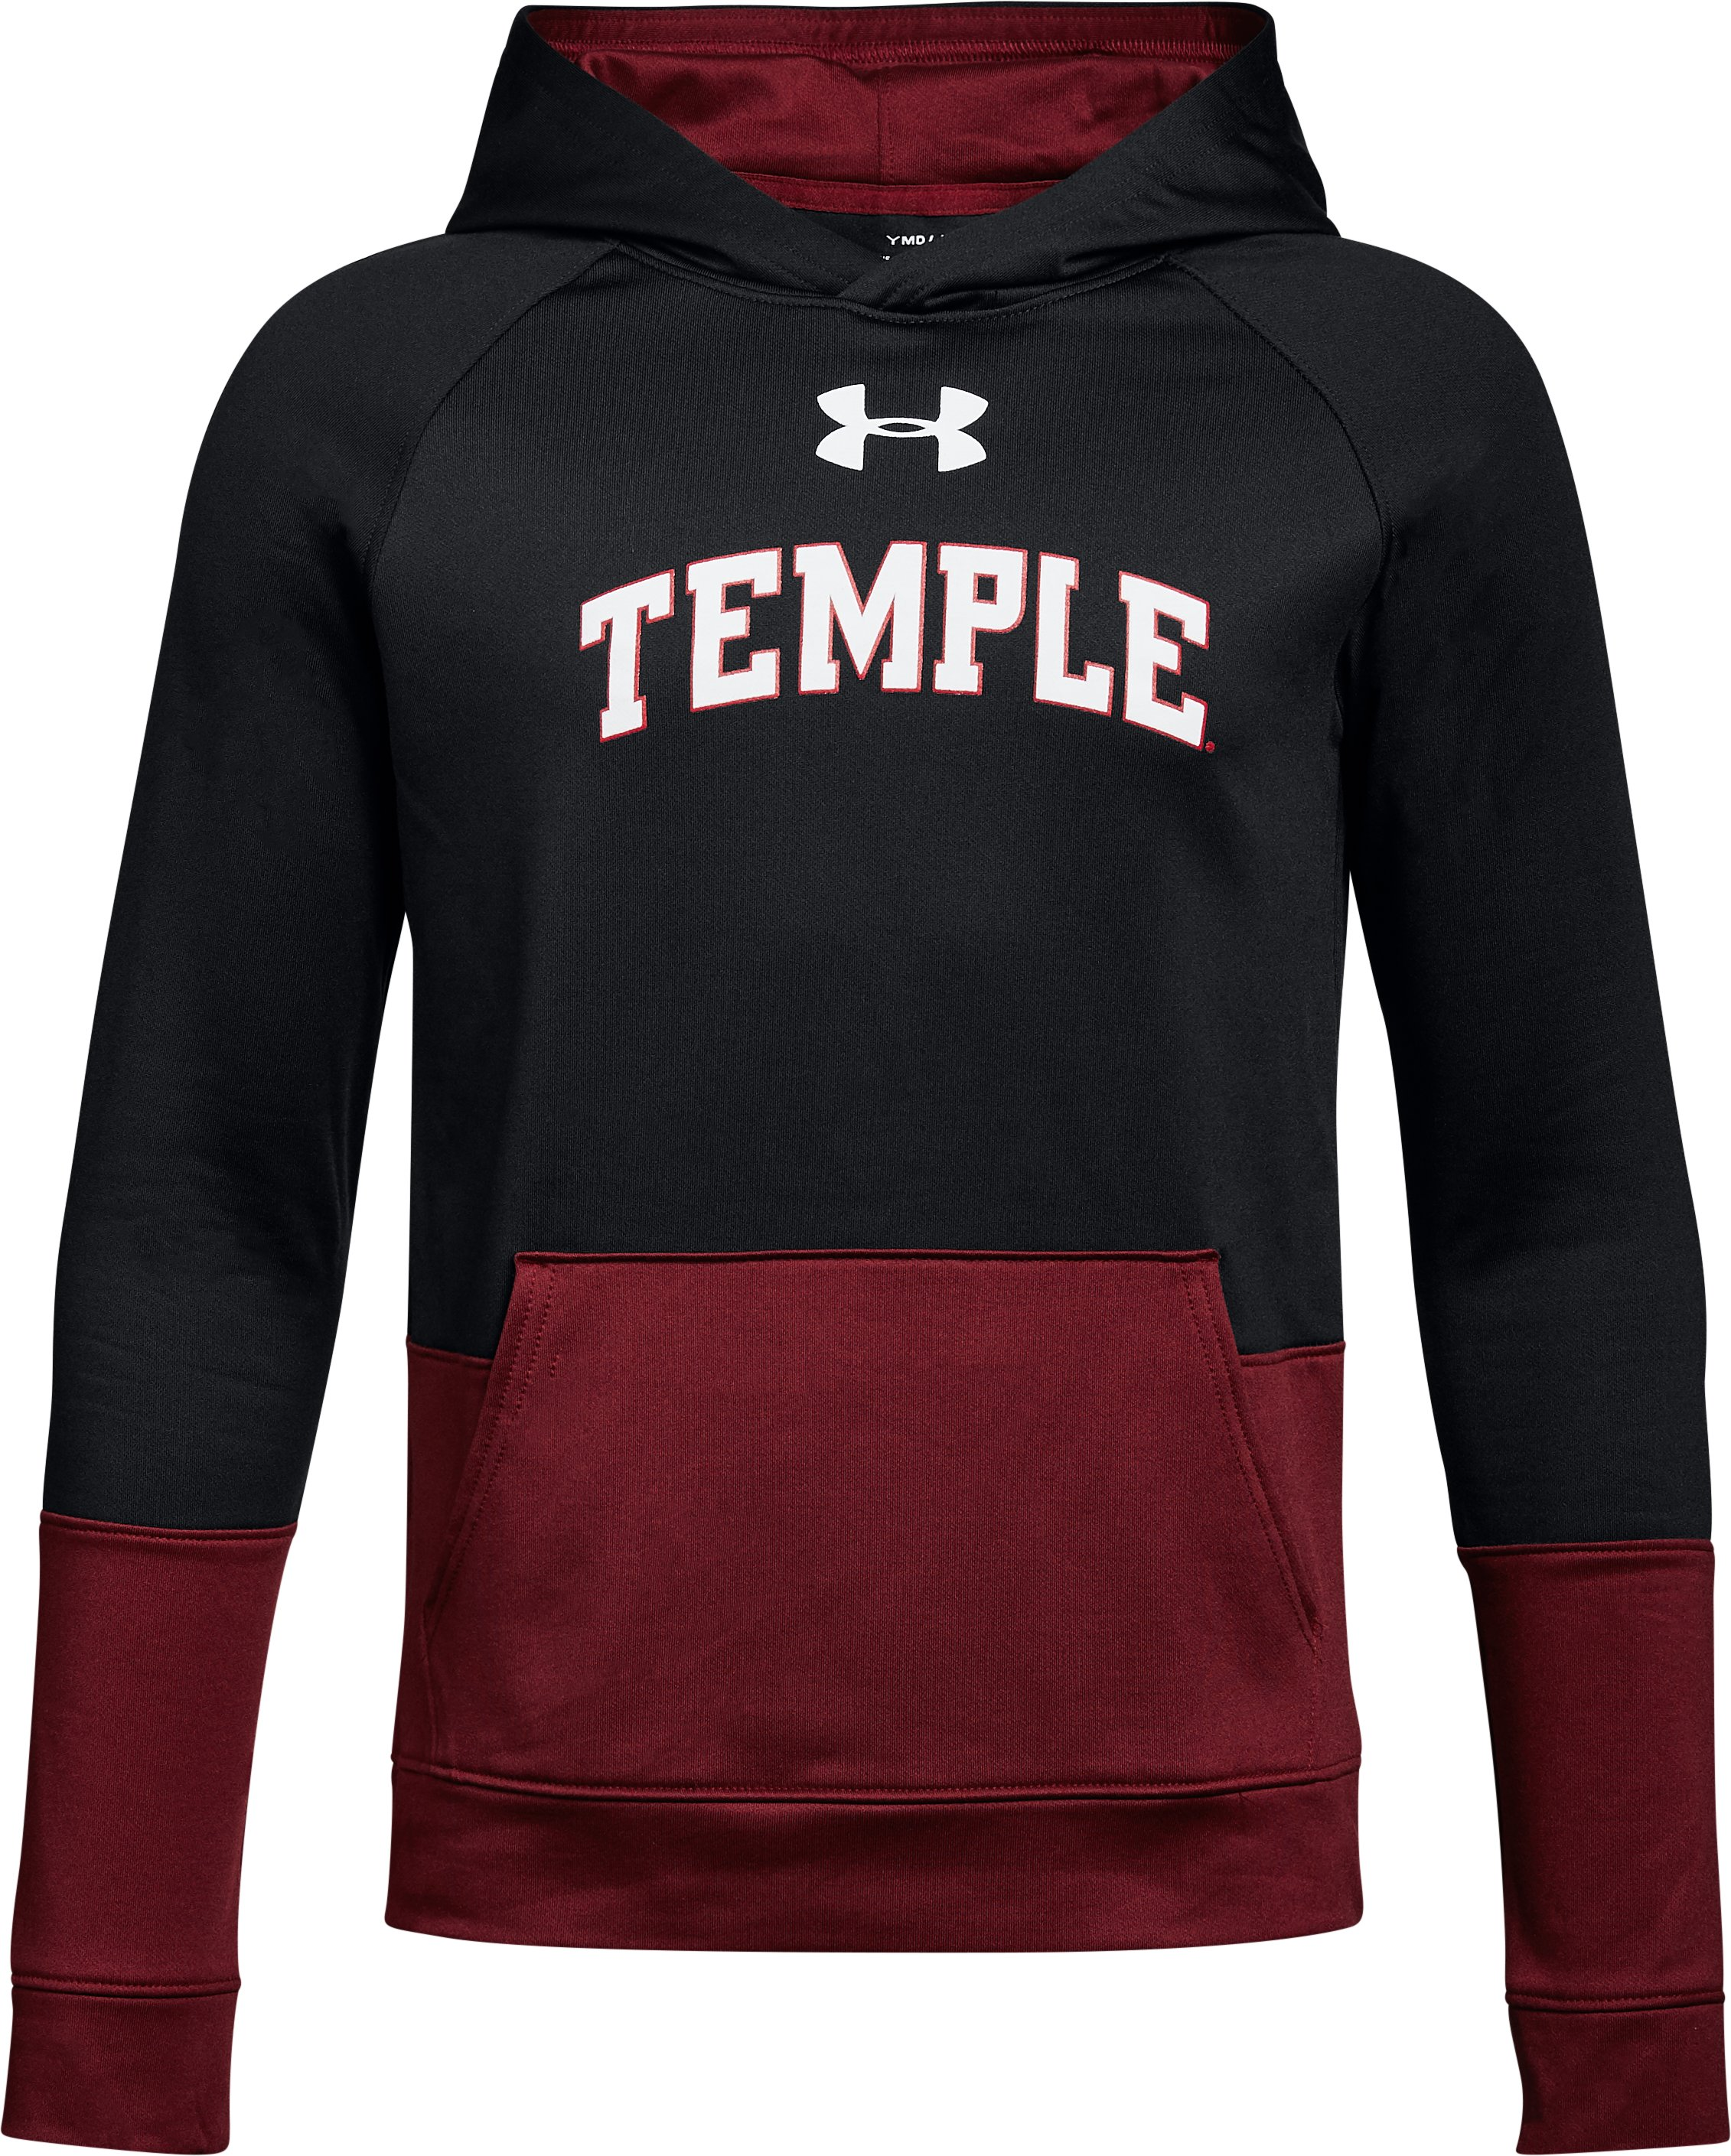 Boys' Temple UA Tech Terry Hoodie, Black , undefined